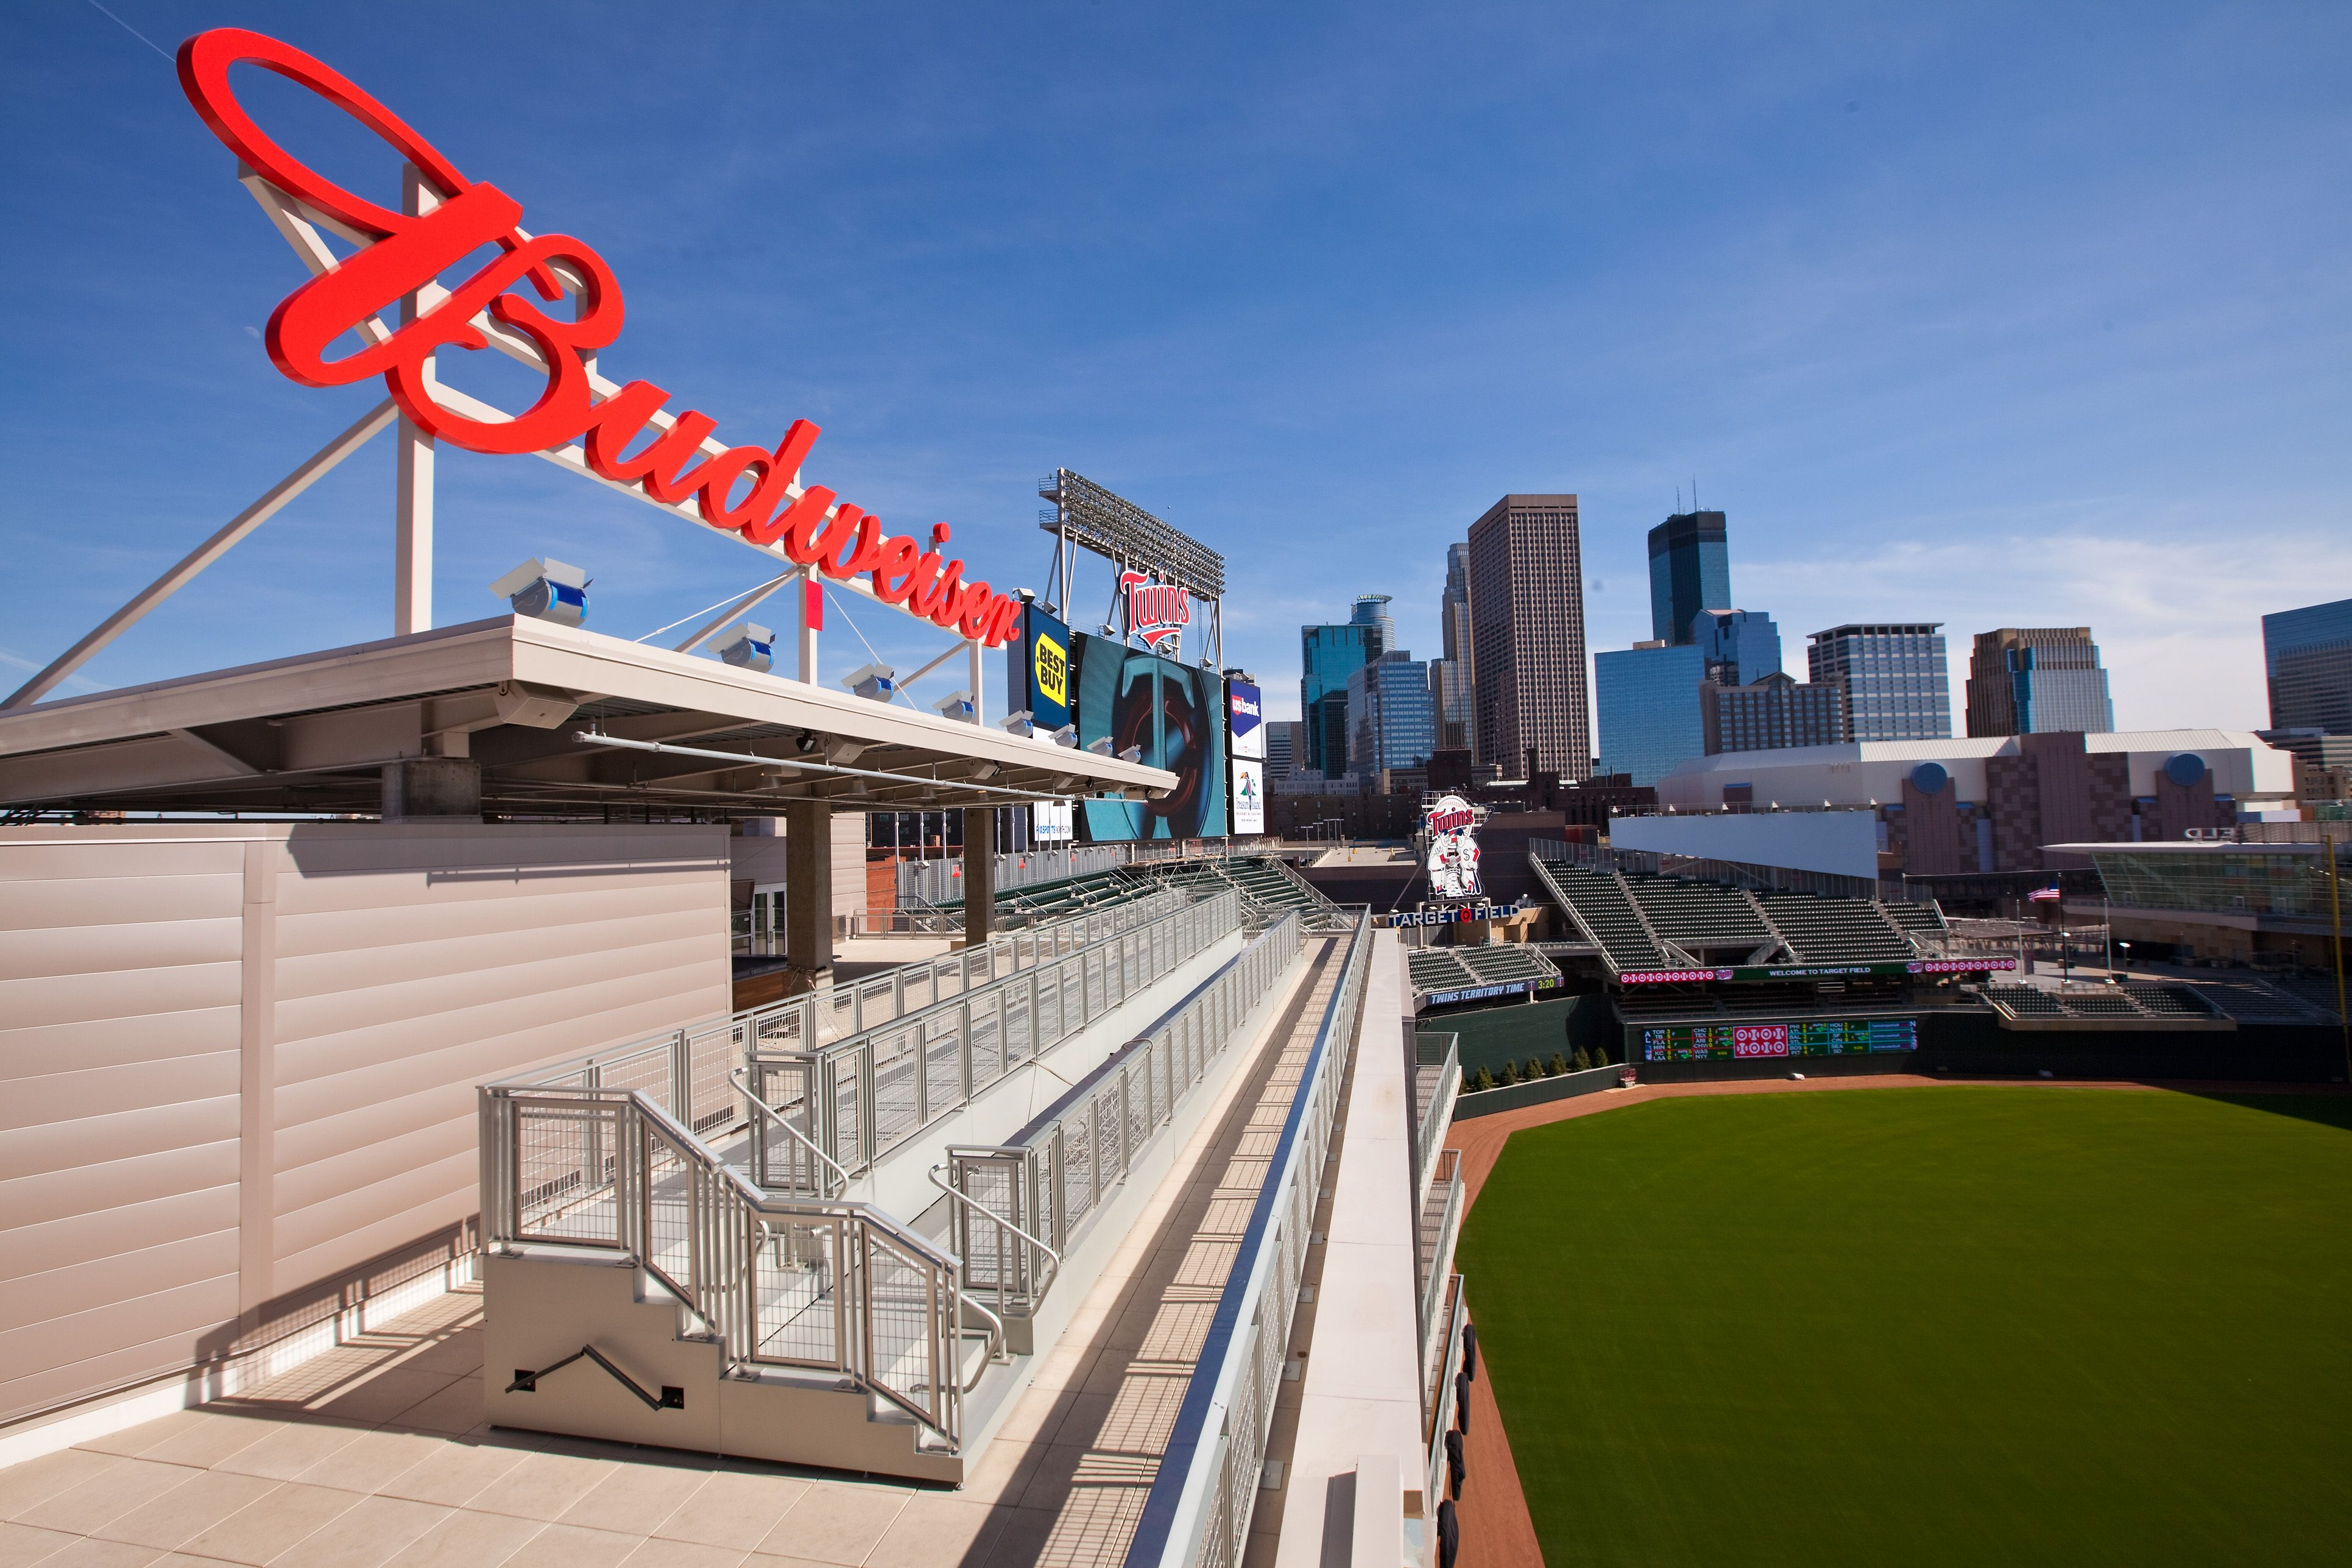 Budweiser Roof Deck Target Field Events Minnesota Twins Baseball Www Targetfieldevents Com Perfect Venue For Your Event Roof Cladding Brick Roof Roofing